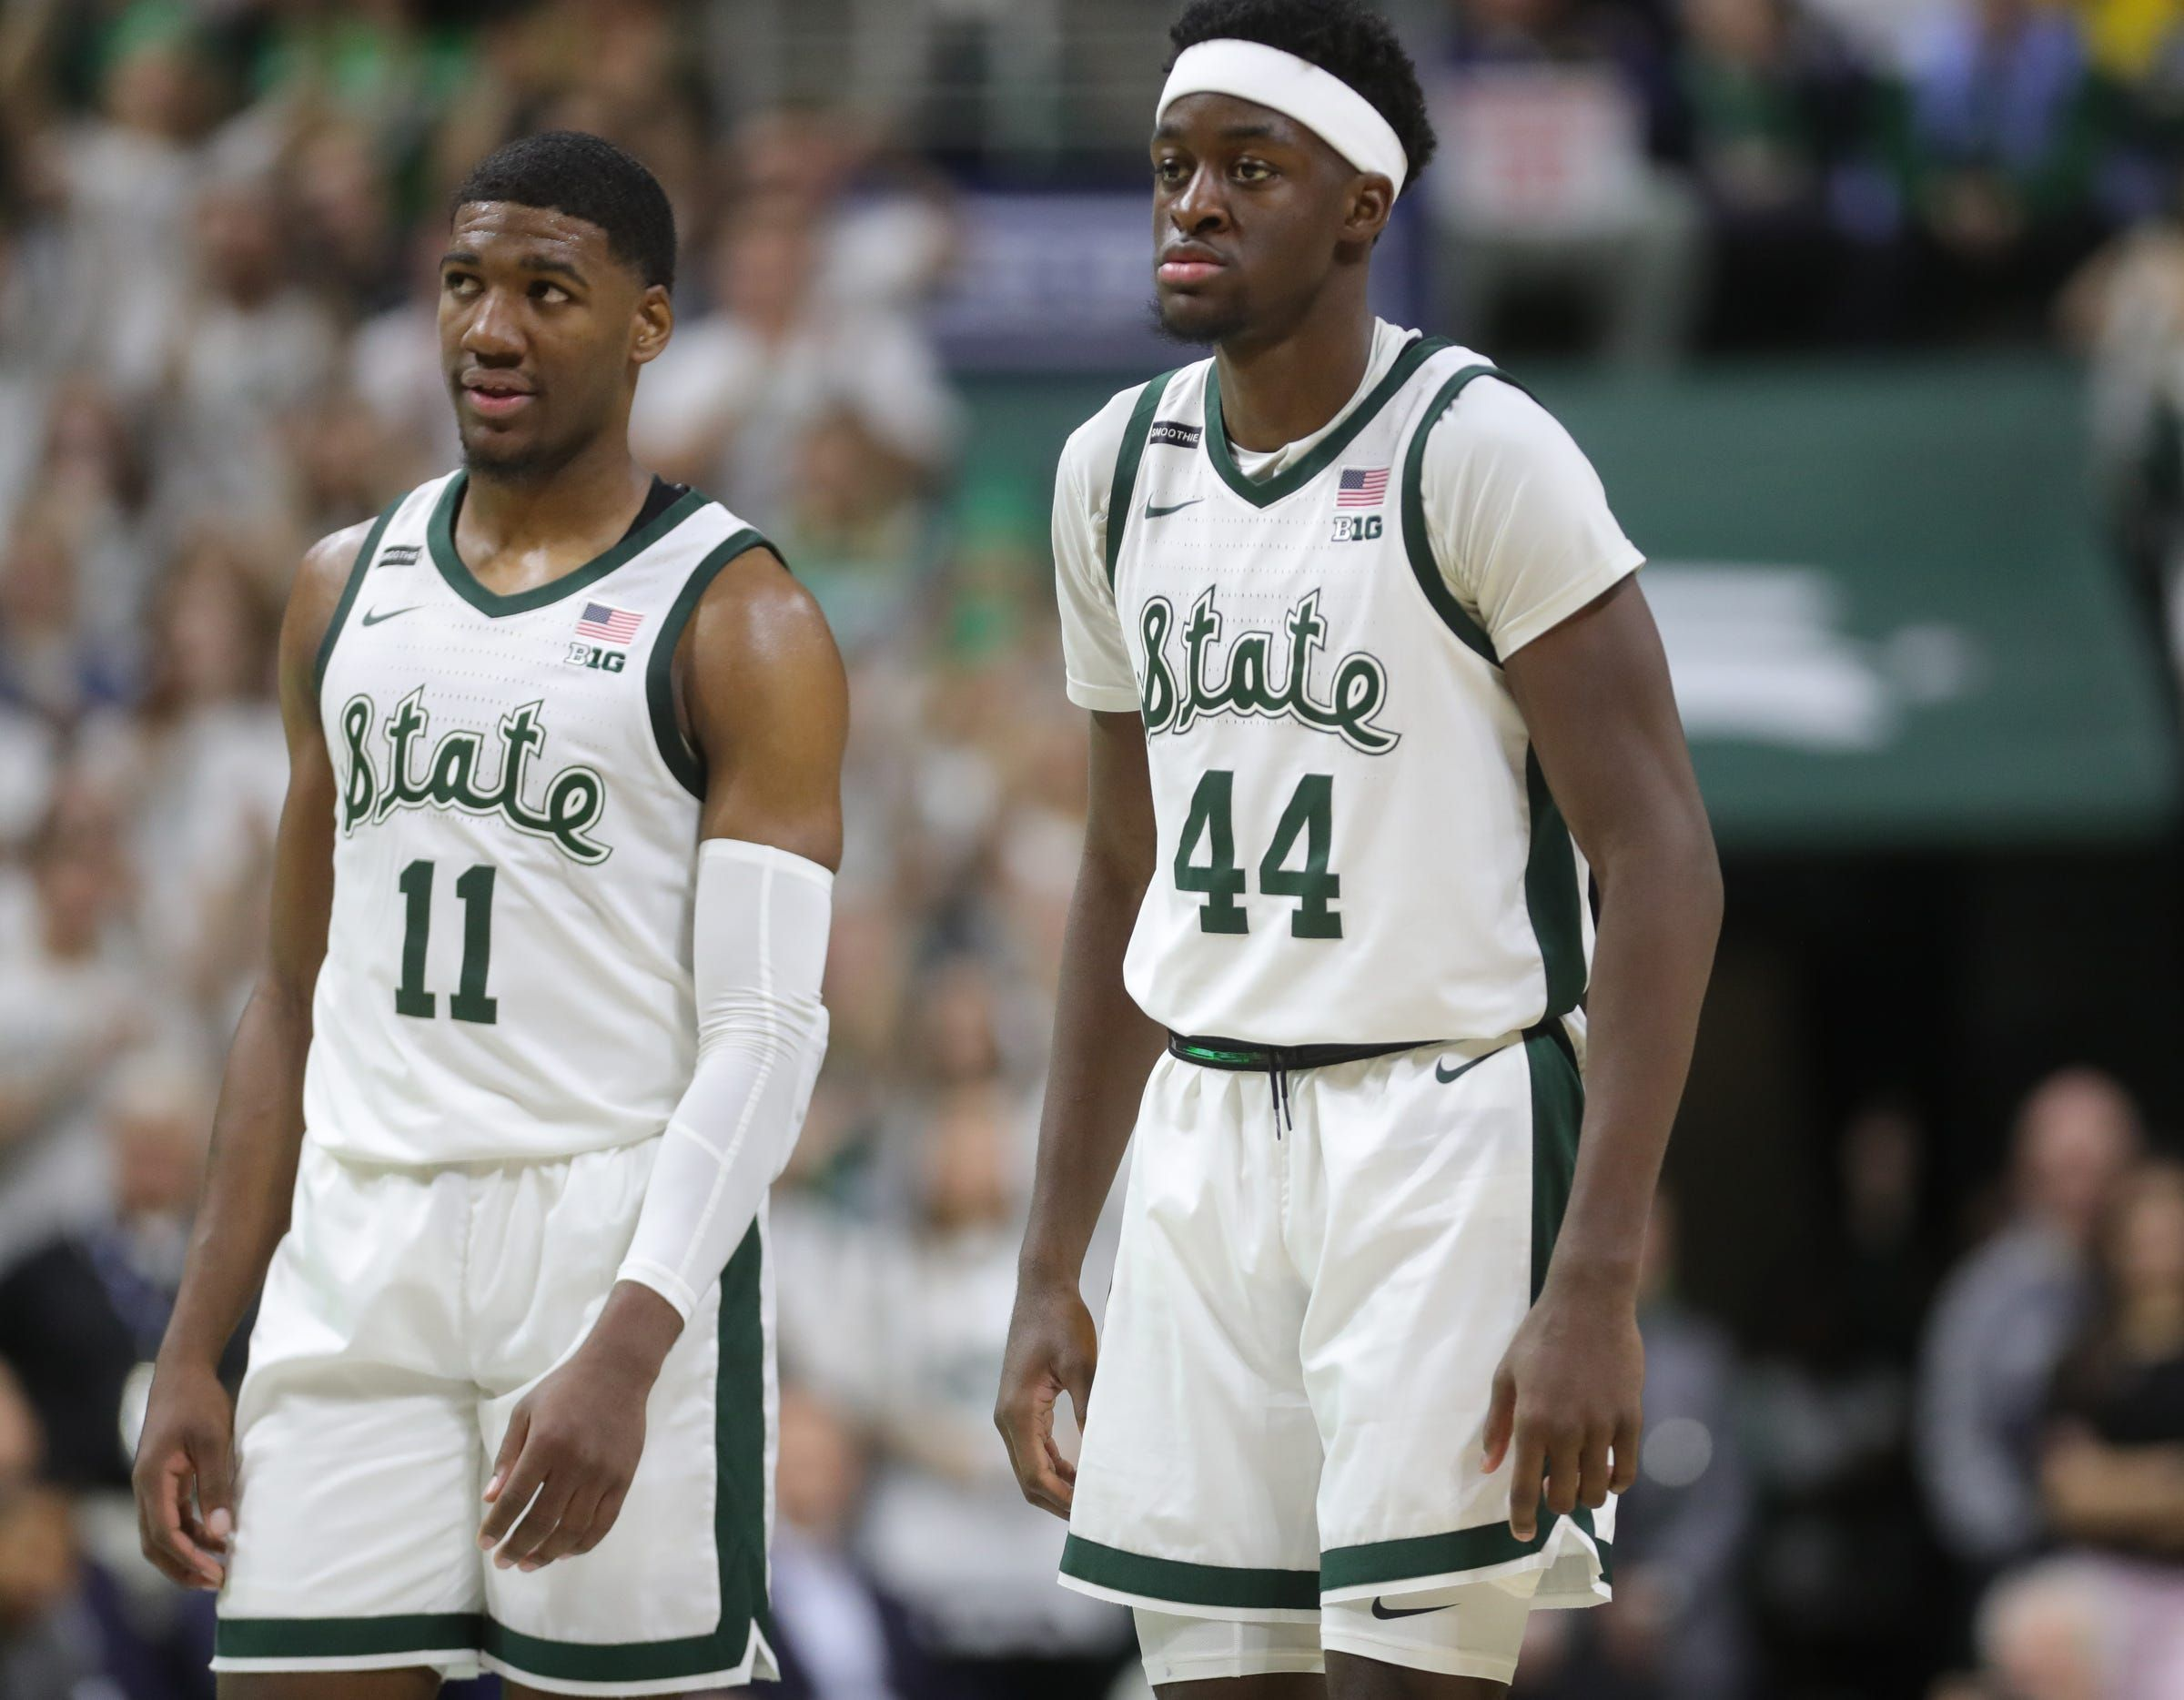 Michigan State Basketball Loses To Purdue 71 42 Game Thread In 2020 Michigan State Basketball Michigan State Michigan State Spartans Basketball